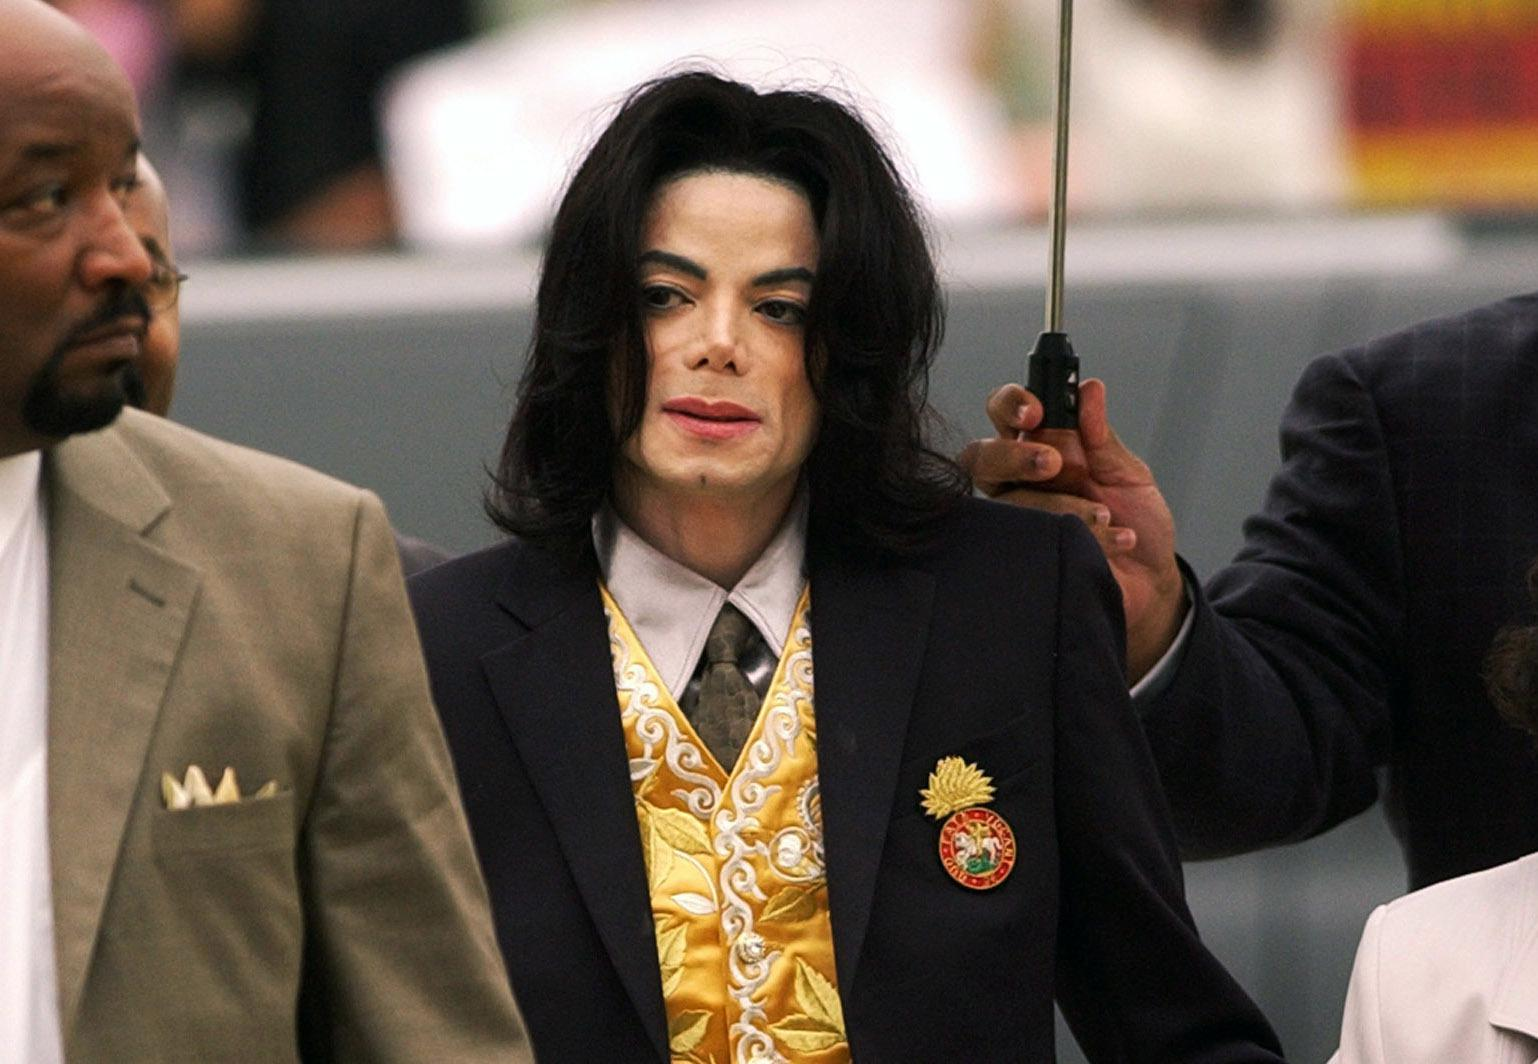 After years, court hands tax win to Michael Jackson heirs - The Associated Press